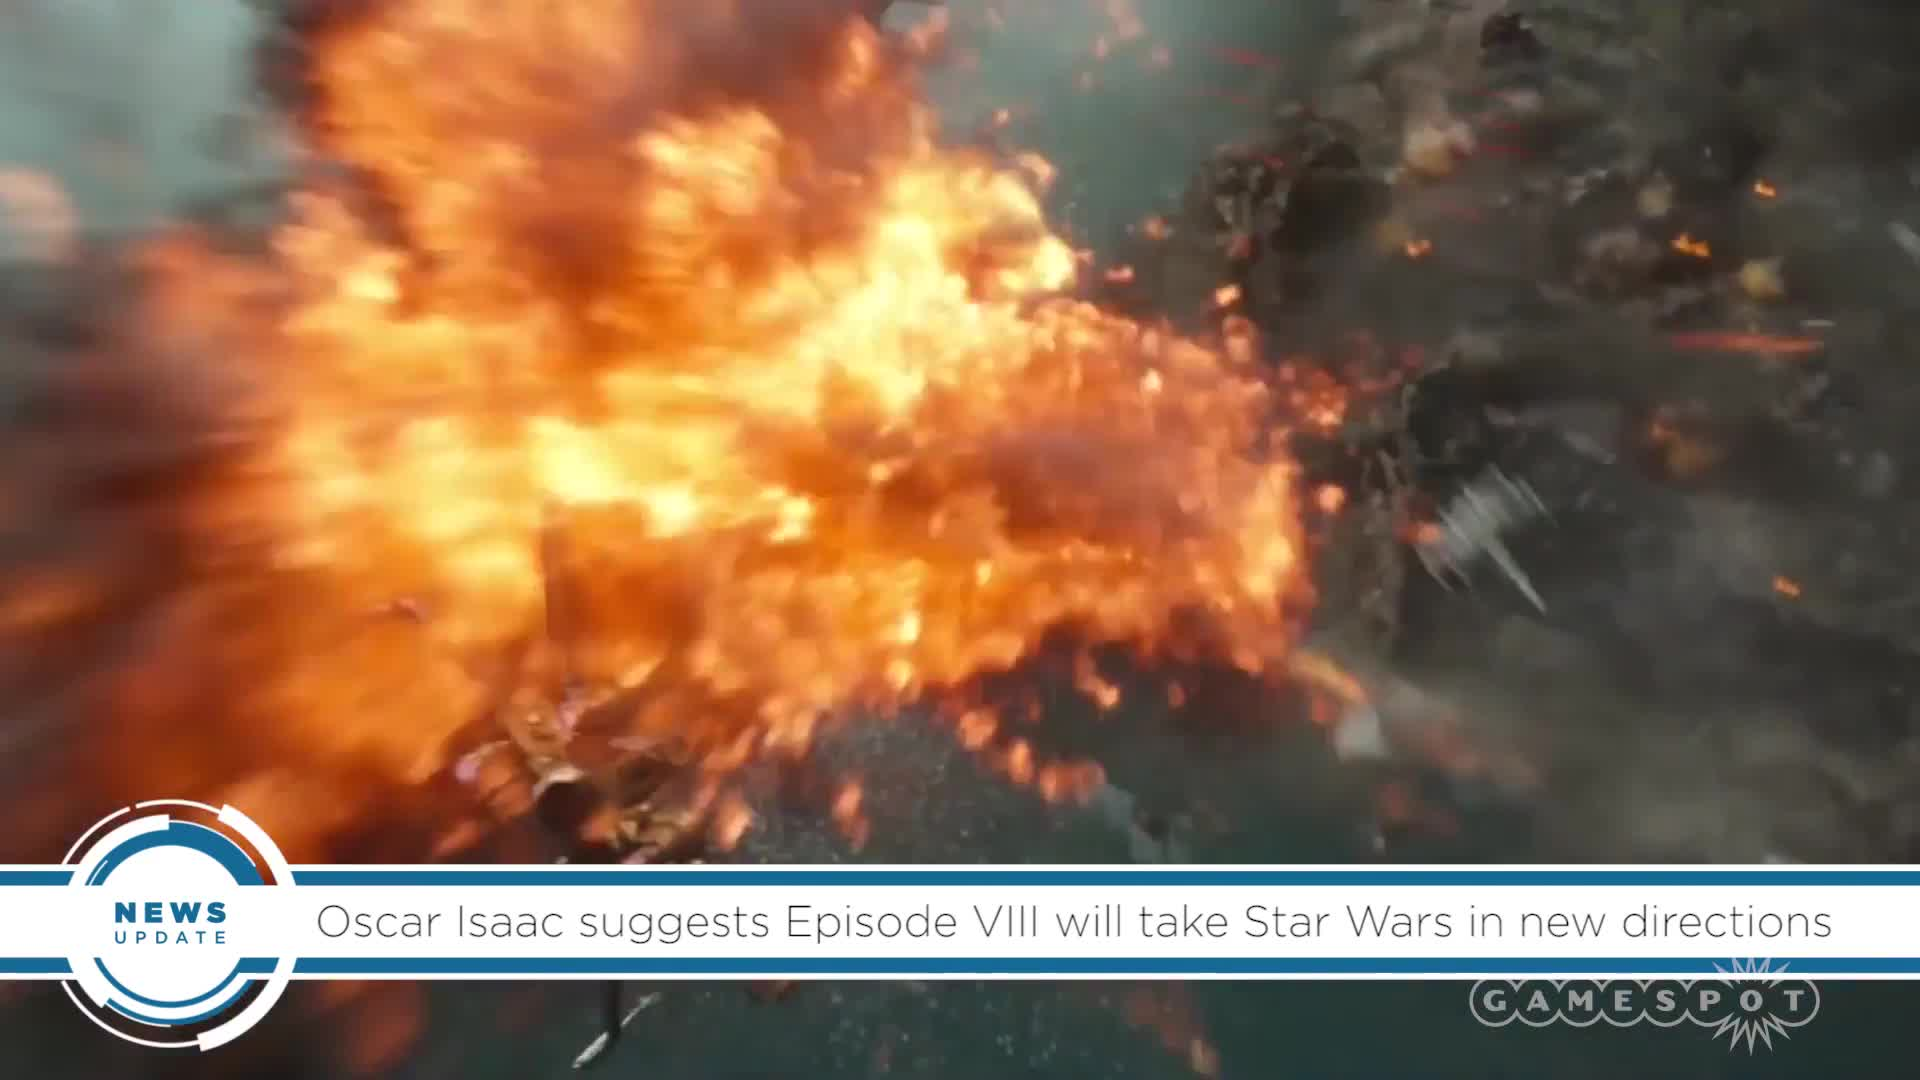 GS News Update: Star Wars Episode 8 On-Set Images Reveal Millennium Falcon [SPOILERS]